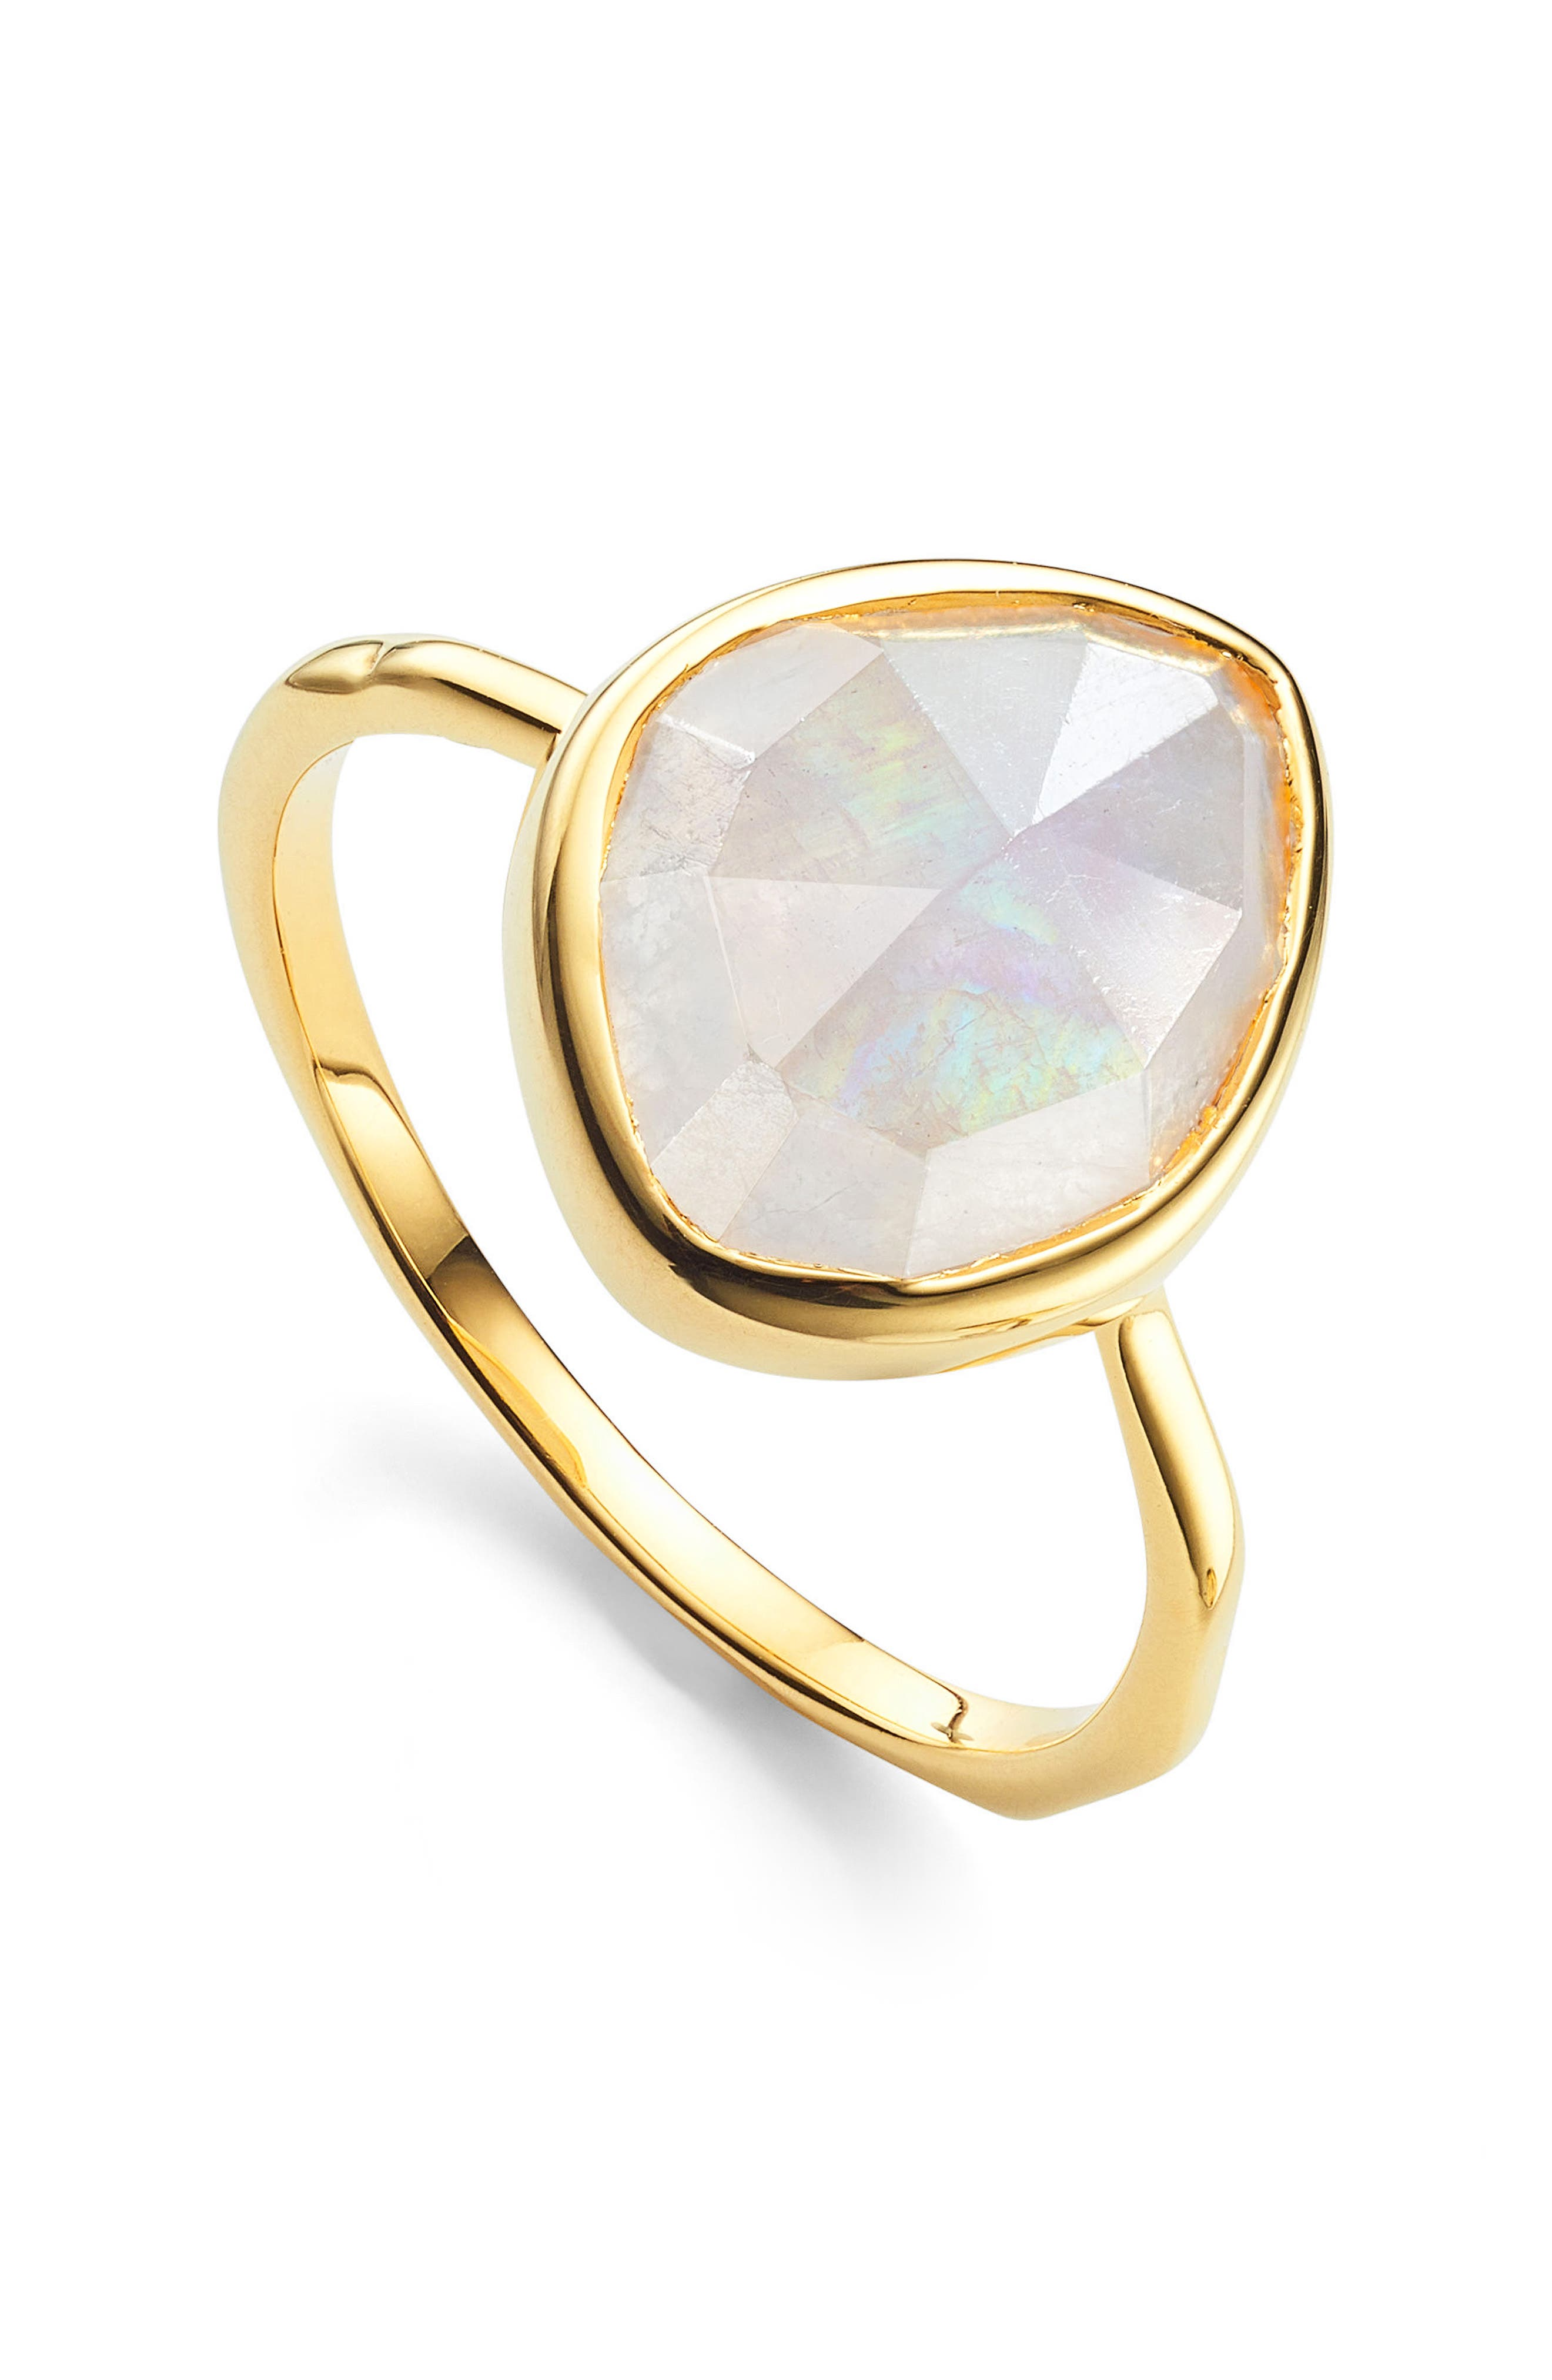 Siren Small Nugget Stacking Ring,                             Alternate thumbnail 3, color,                             YELLOW GOLD/ MOONSTONE